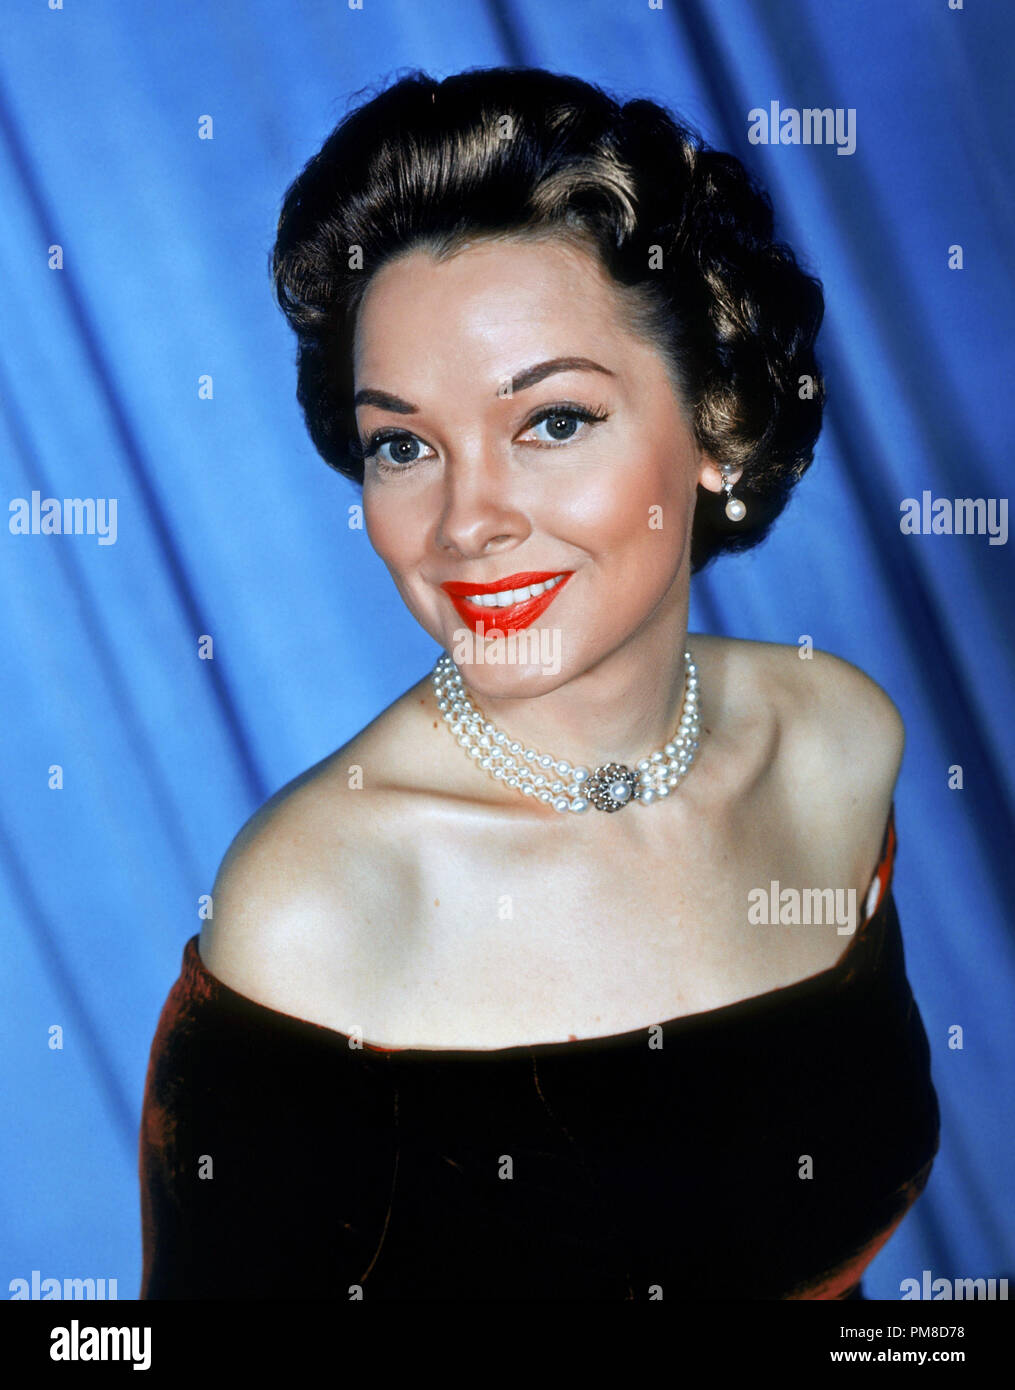 Kathryn Grayson, circa 1957     File Reference # 31955_345THA - Stock Image